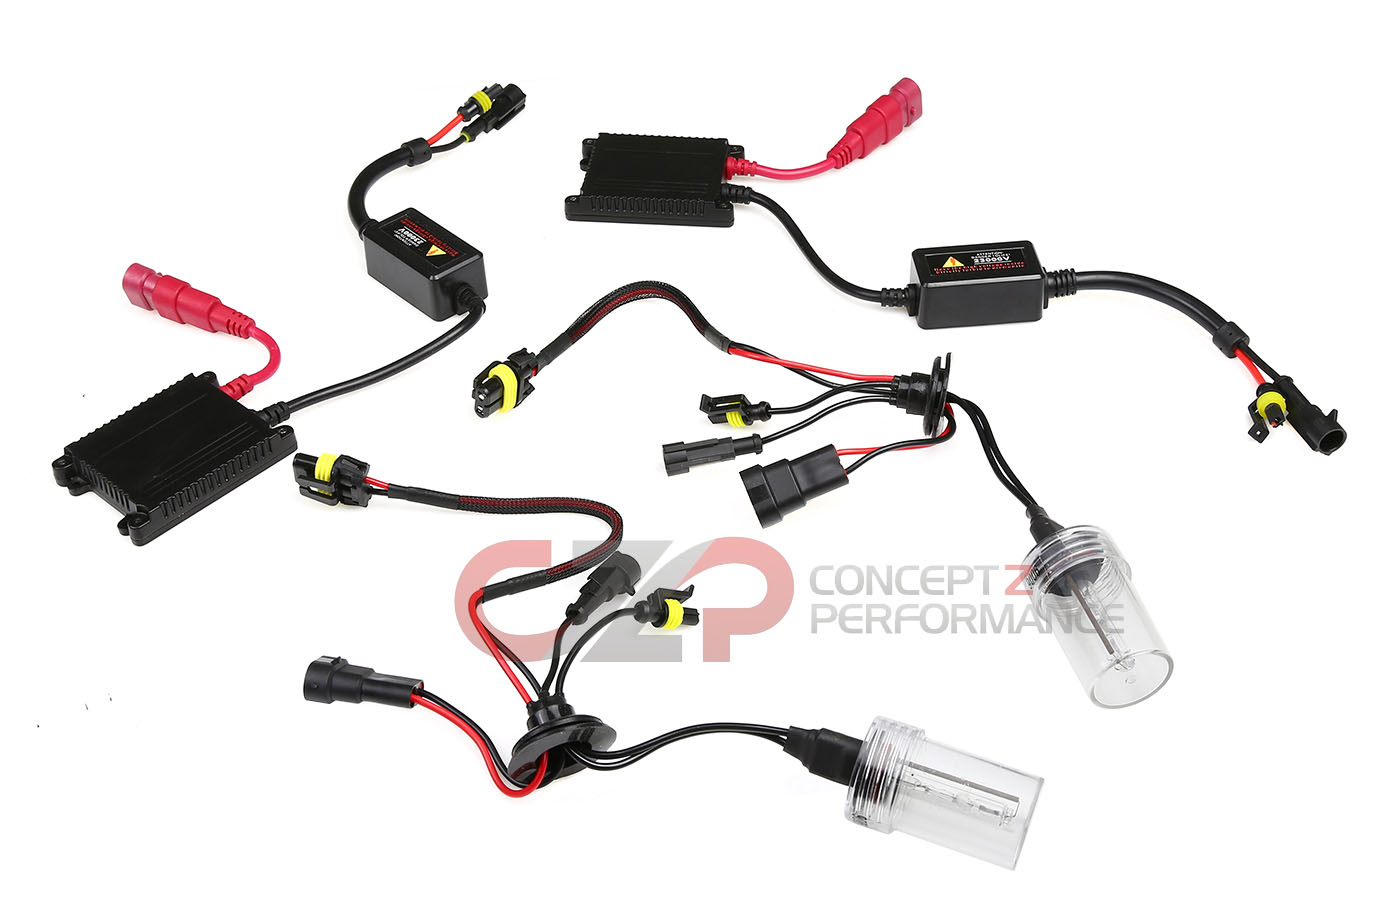 S14 Hid Wiring Not Lossing Diagram For Xenon Kit Body Electrical Lamps Lighting Concept Z Performance Rh Conceptzperformance Com Schematic